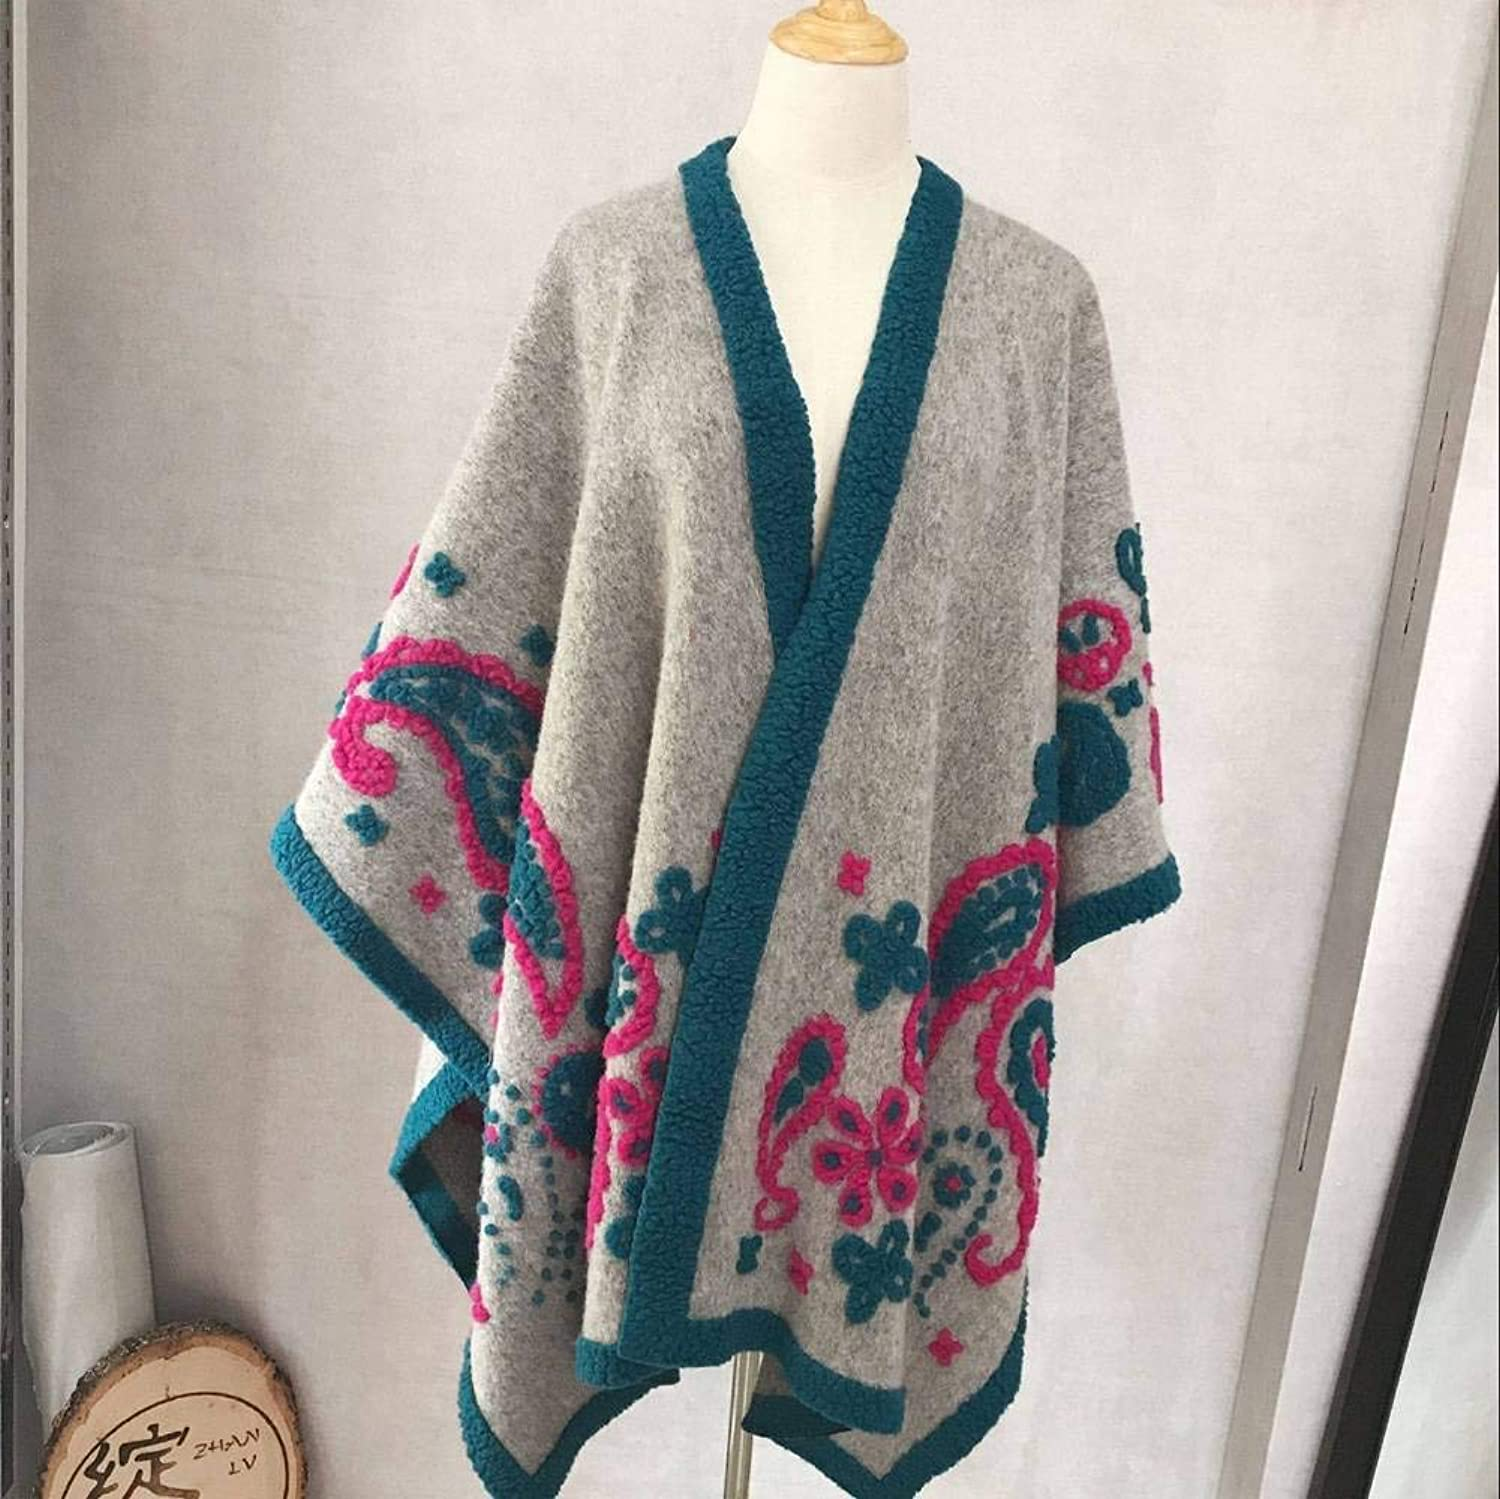 WJS Elegant Ladies Gradient color Wool Women Warm Flowers Extra Long Scarf Autumn and Winter Outdoor MultiFunctional Fgreyion Trend Wild Warm Shawl Scarf Gift